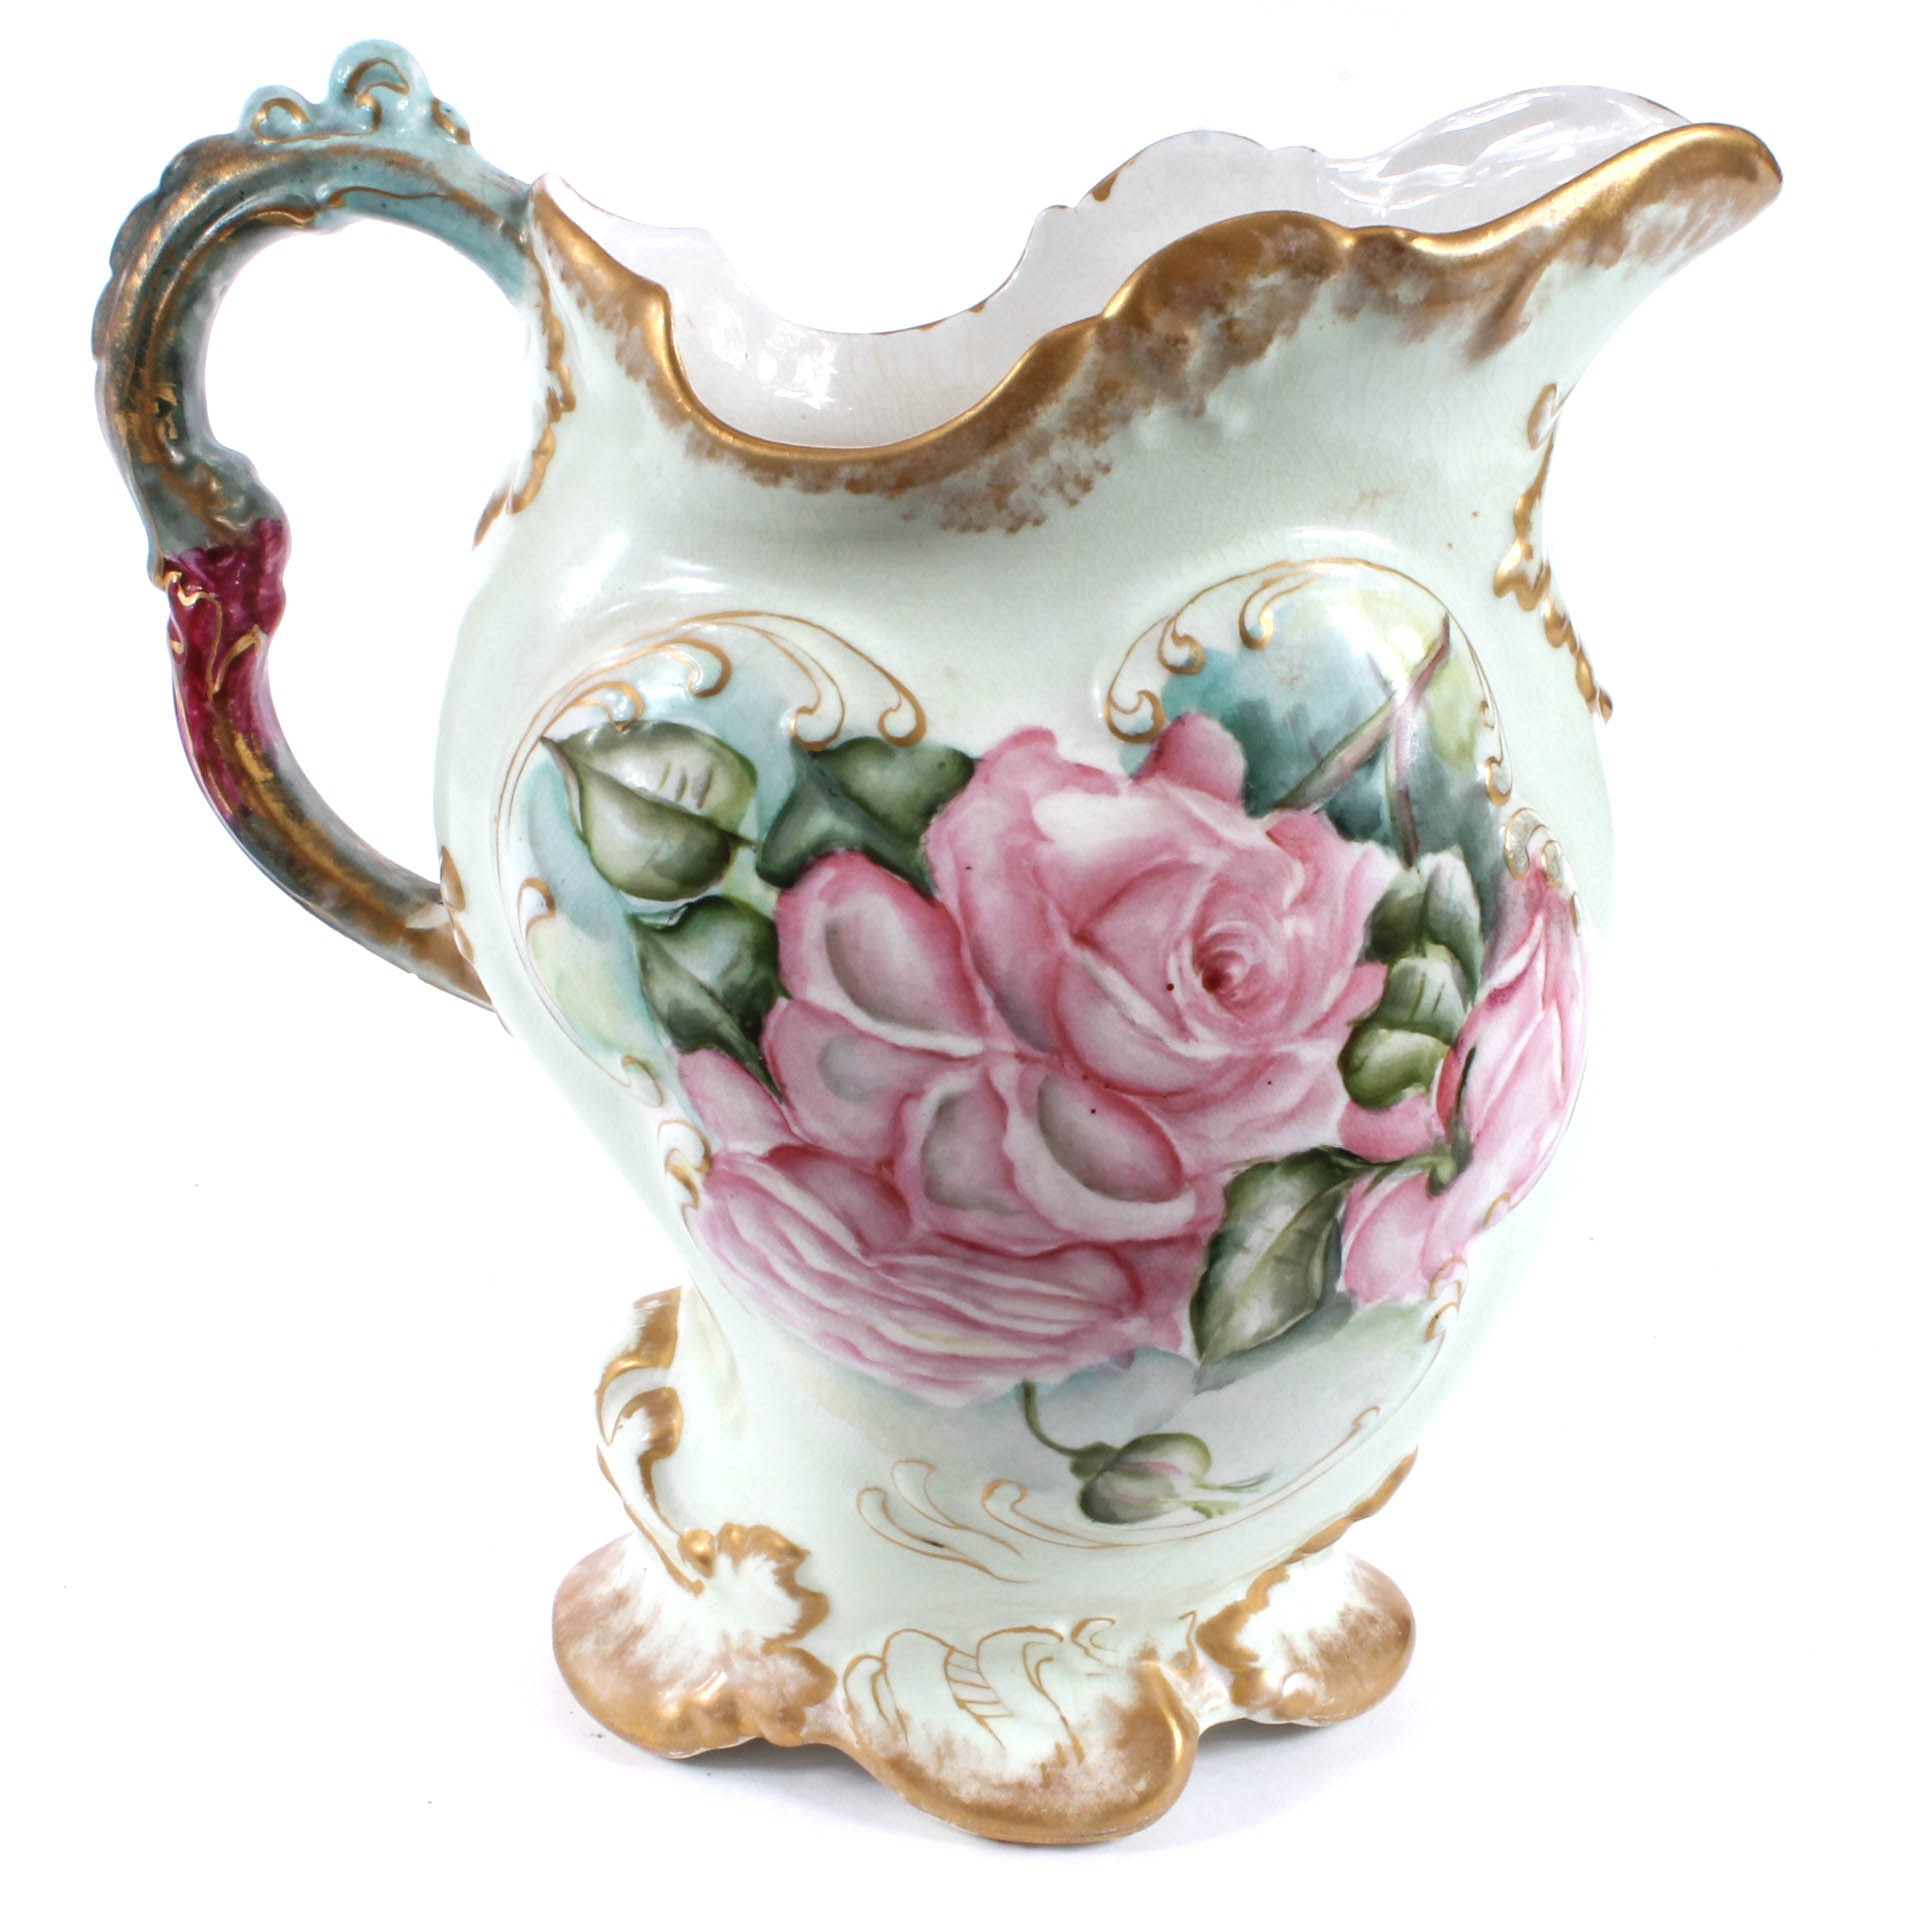 Amature Hand Painted Porcelain Pitcher